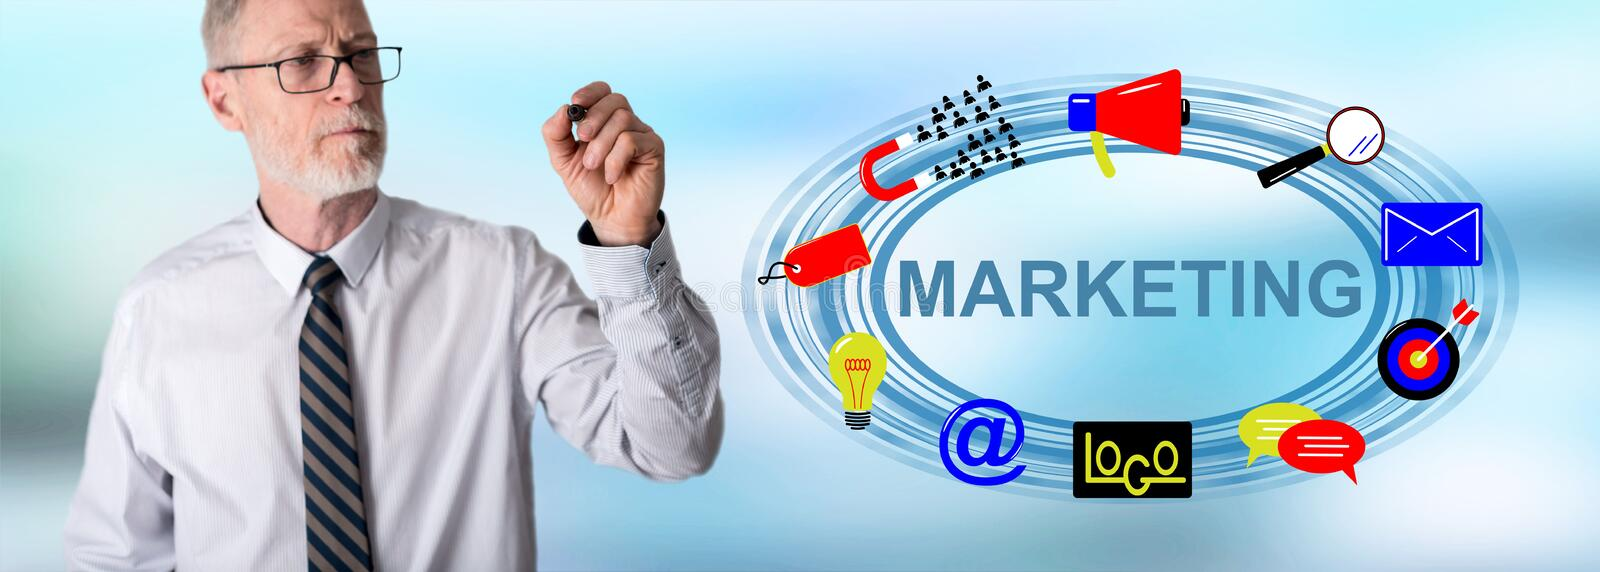 Businessman drawing marketing concept royalty free stock image